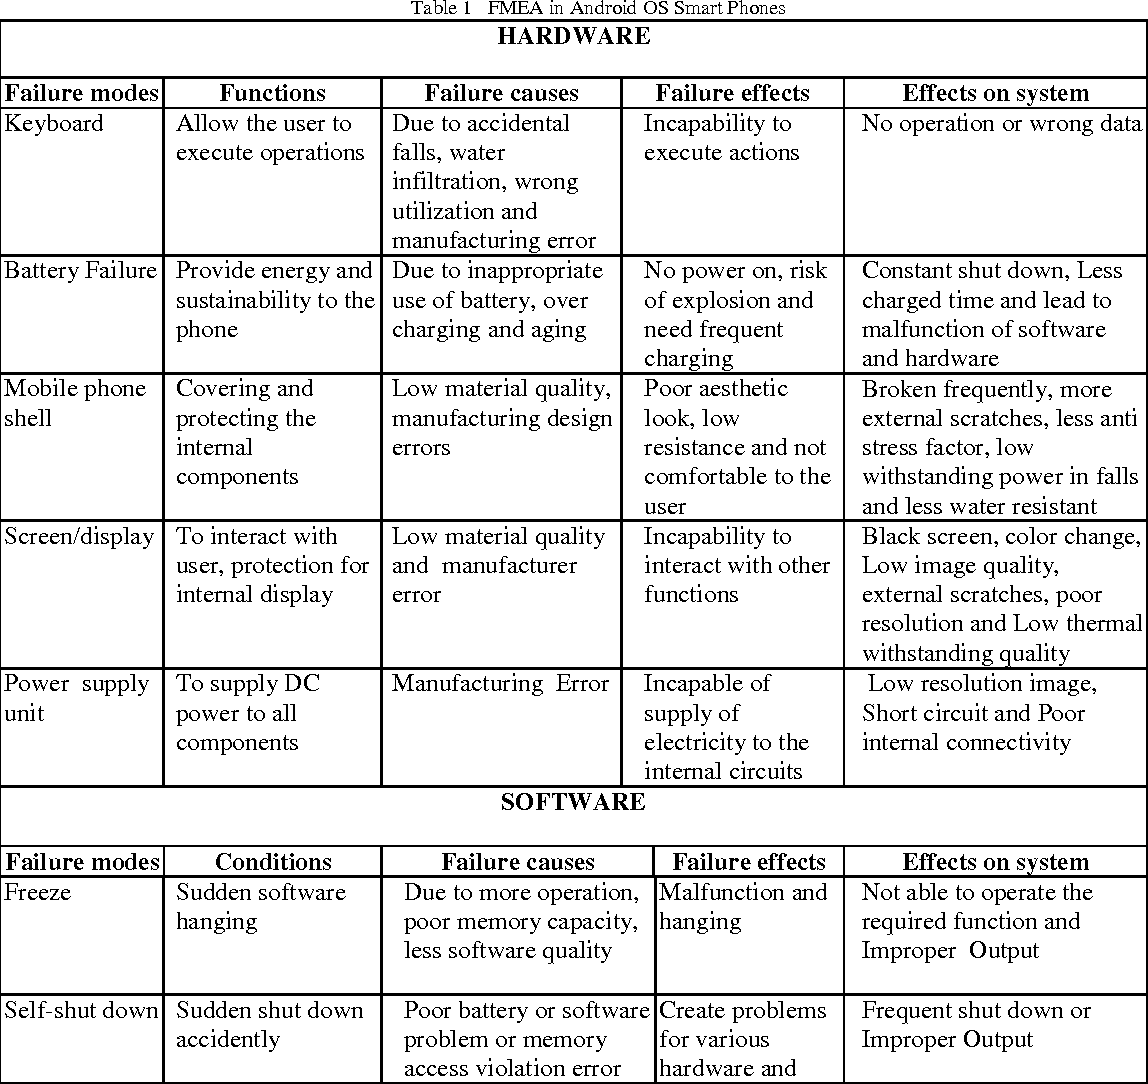 Table 1 from Analysis of Android OS Smart Phones Using